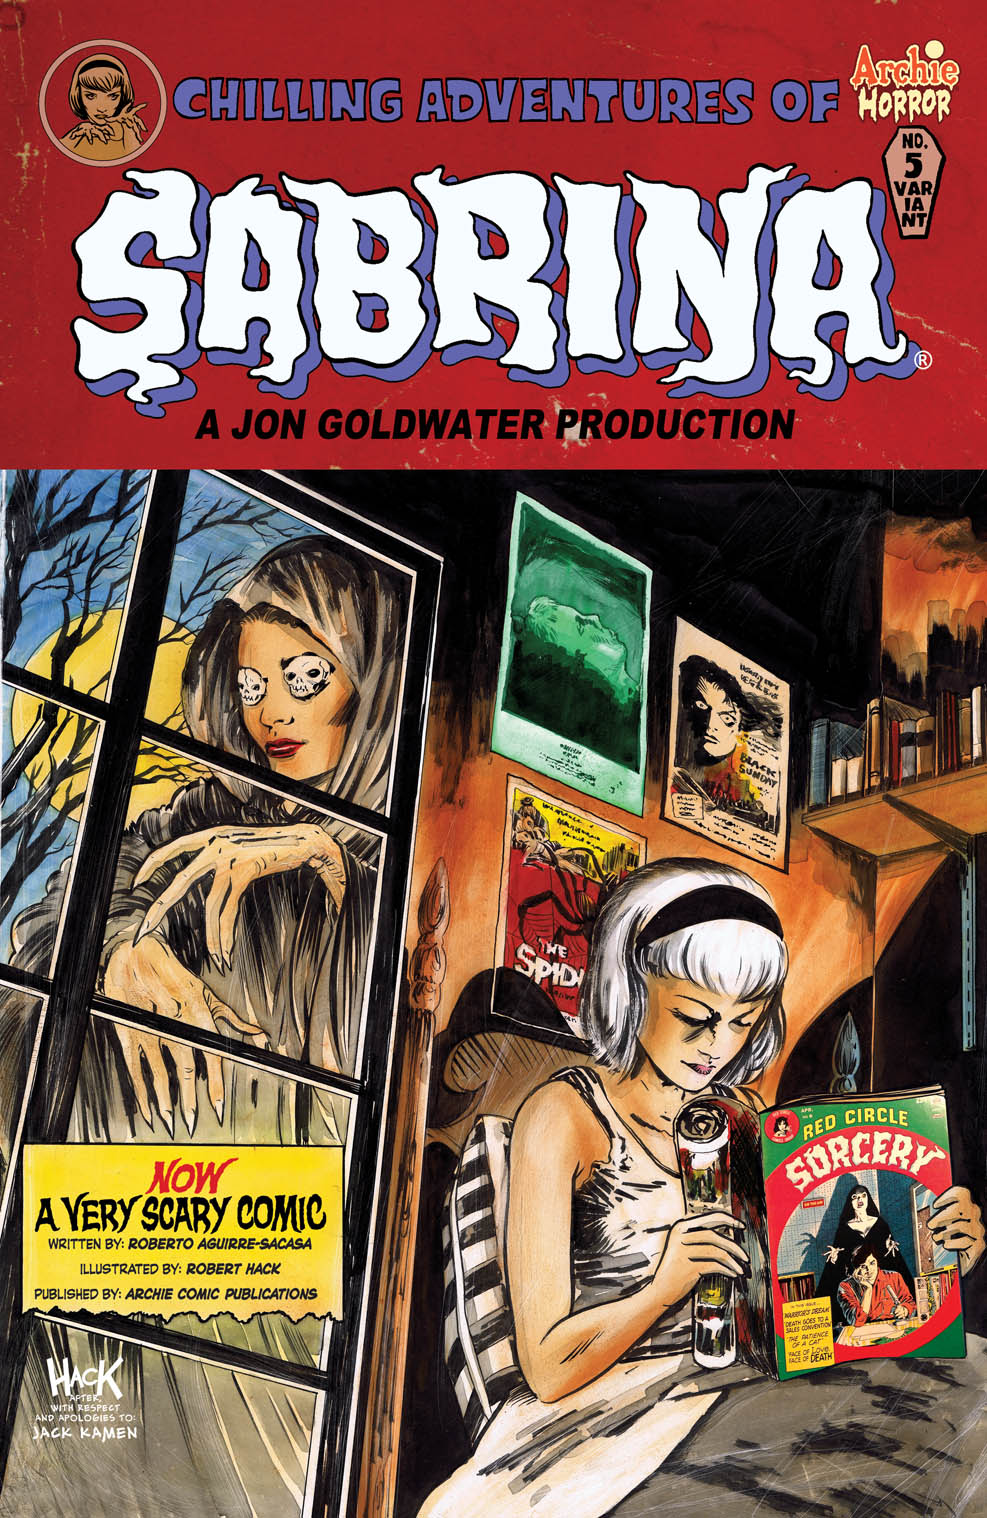 Chilling Adventures of Sabrina #5 Cover